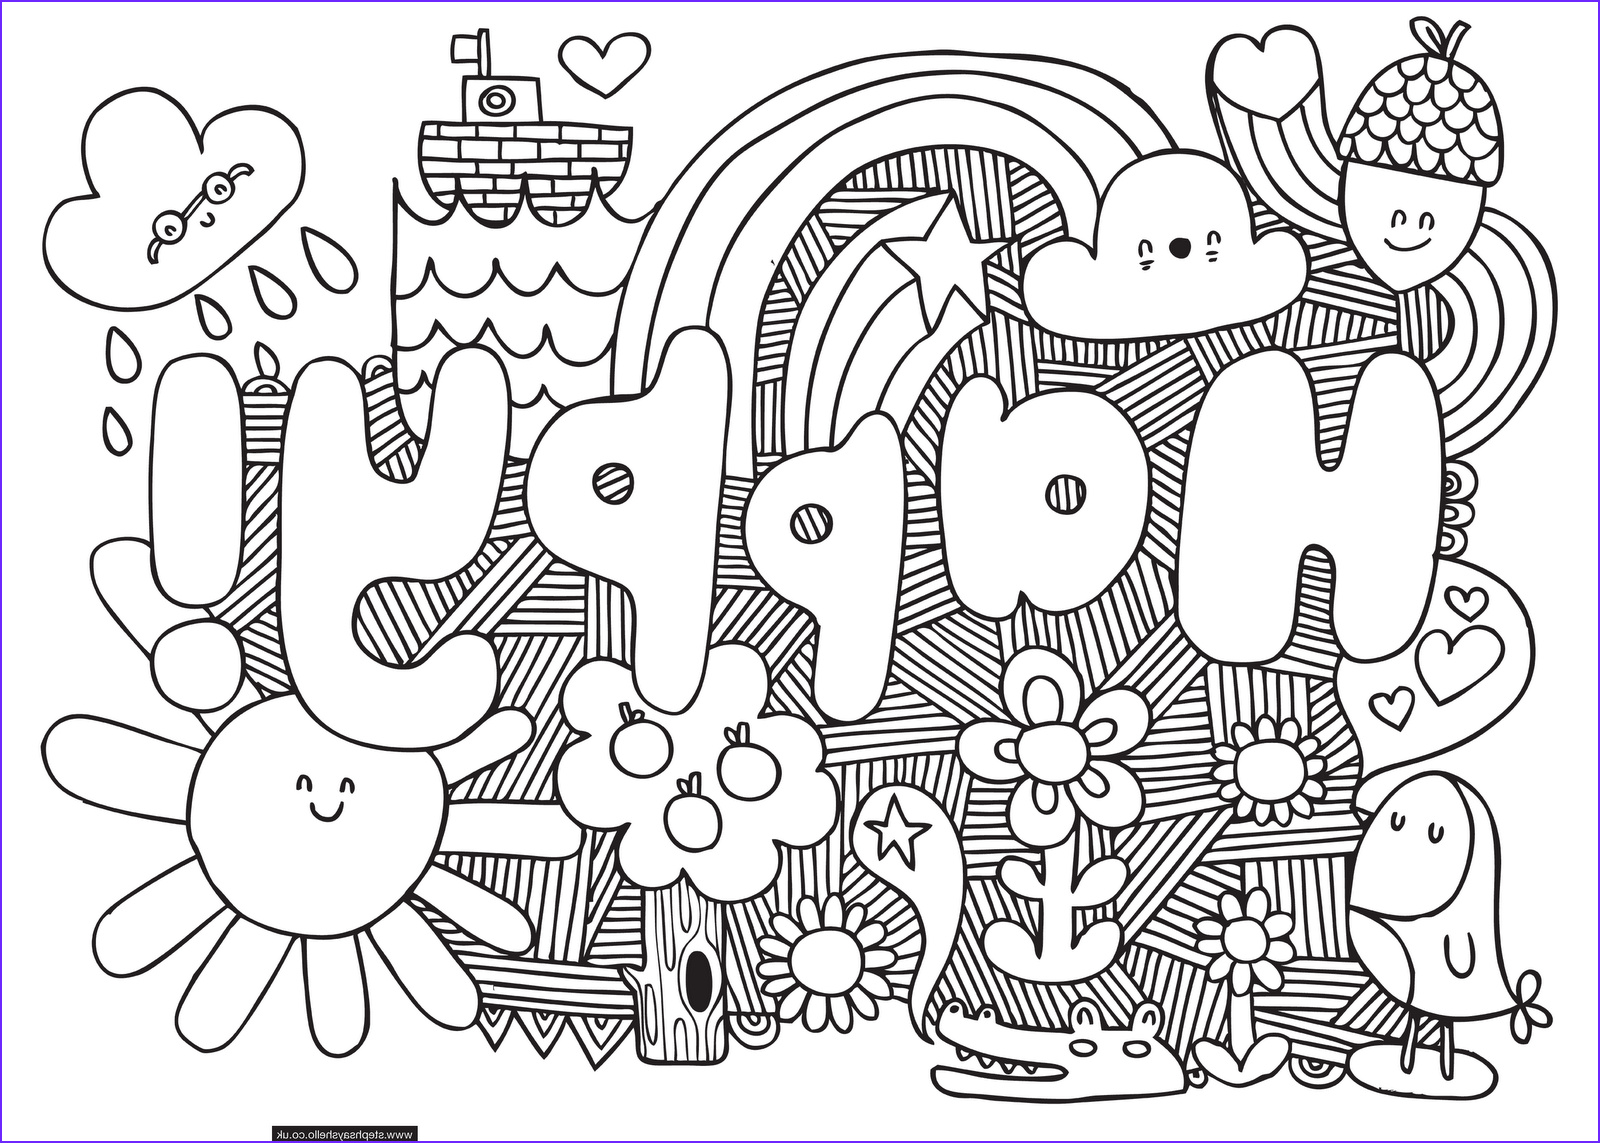 Coloring Page Children Elegant Photos Cool Coloring Pages Elementary Kids Coloring Home